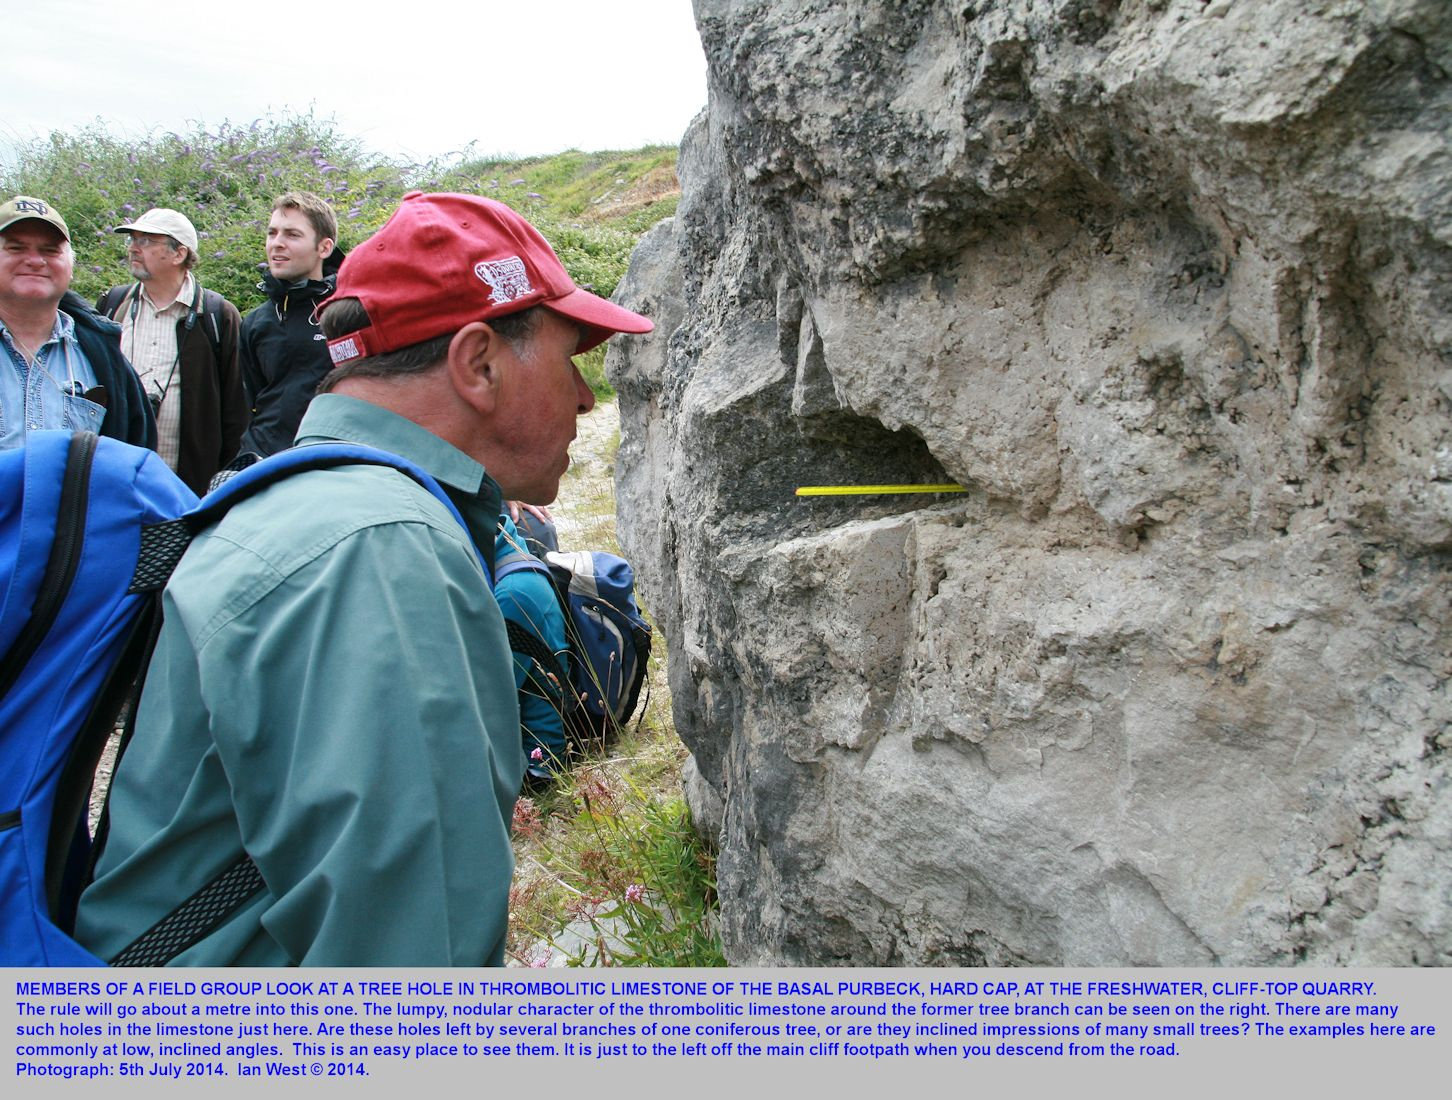 A field party of the OUGS examines moulds left by fossil tree branches in thrombolitic limestone of the Hard Cap, in a small quarry above Freshwater Bay, Isle of Portland, Dorset, 5th July 2014